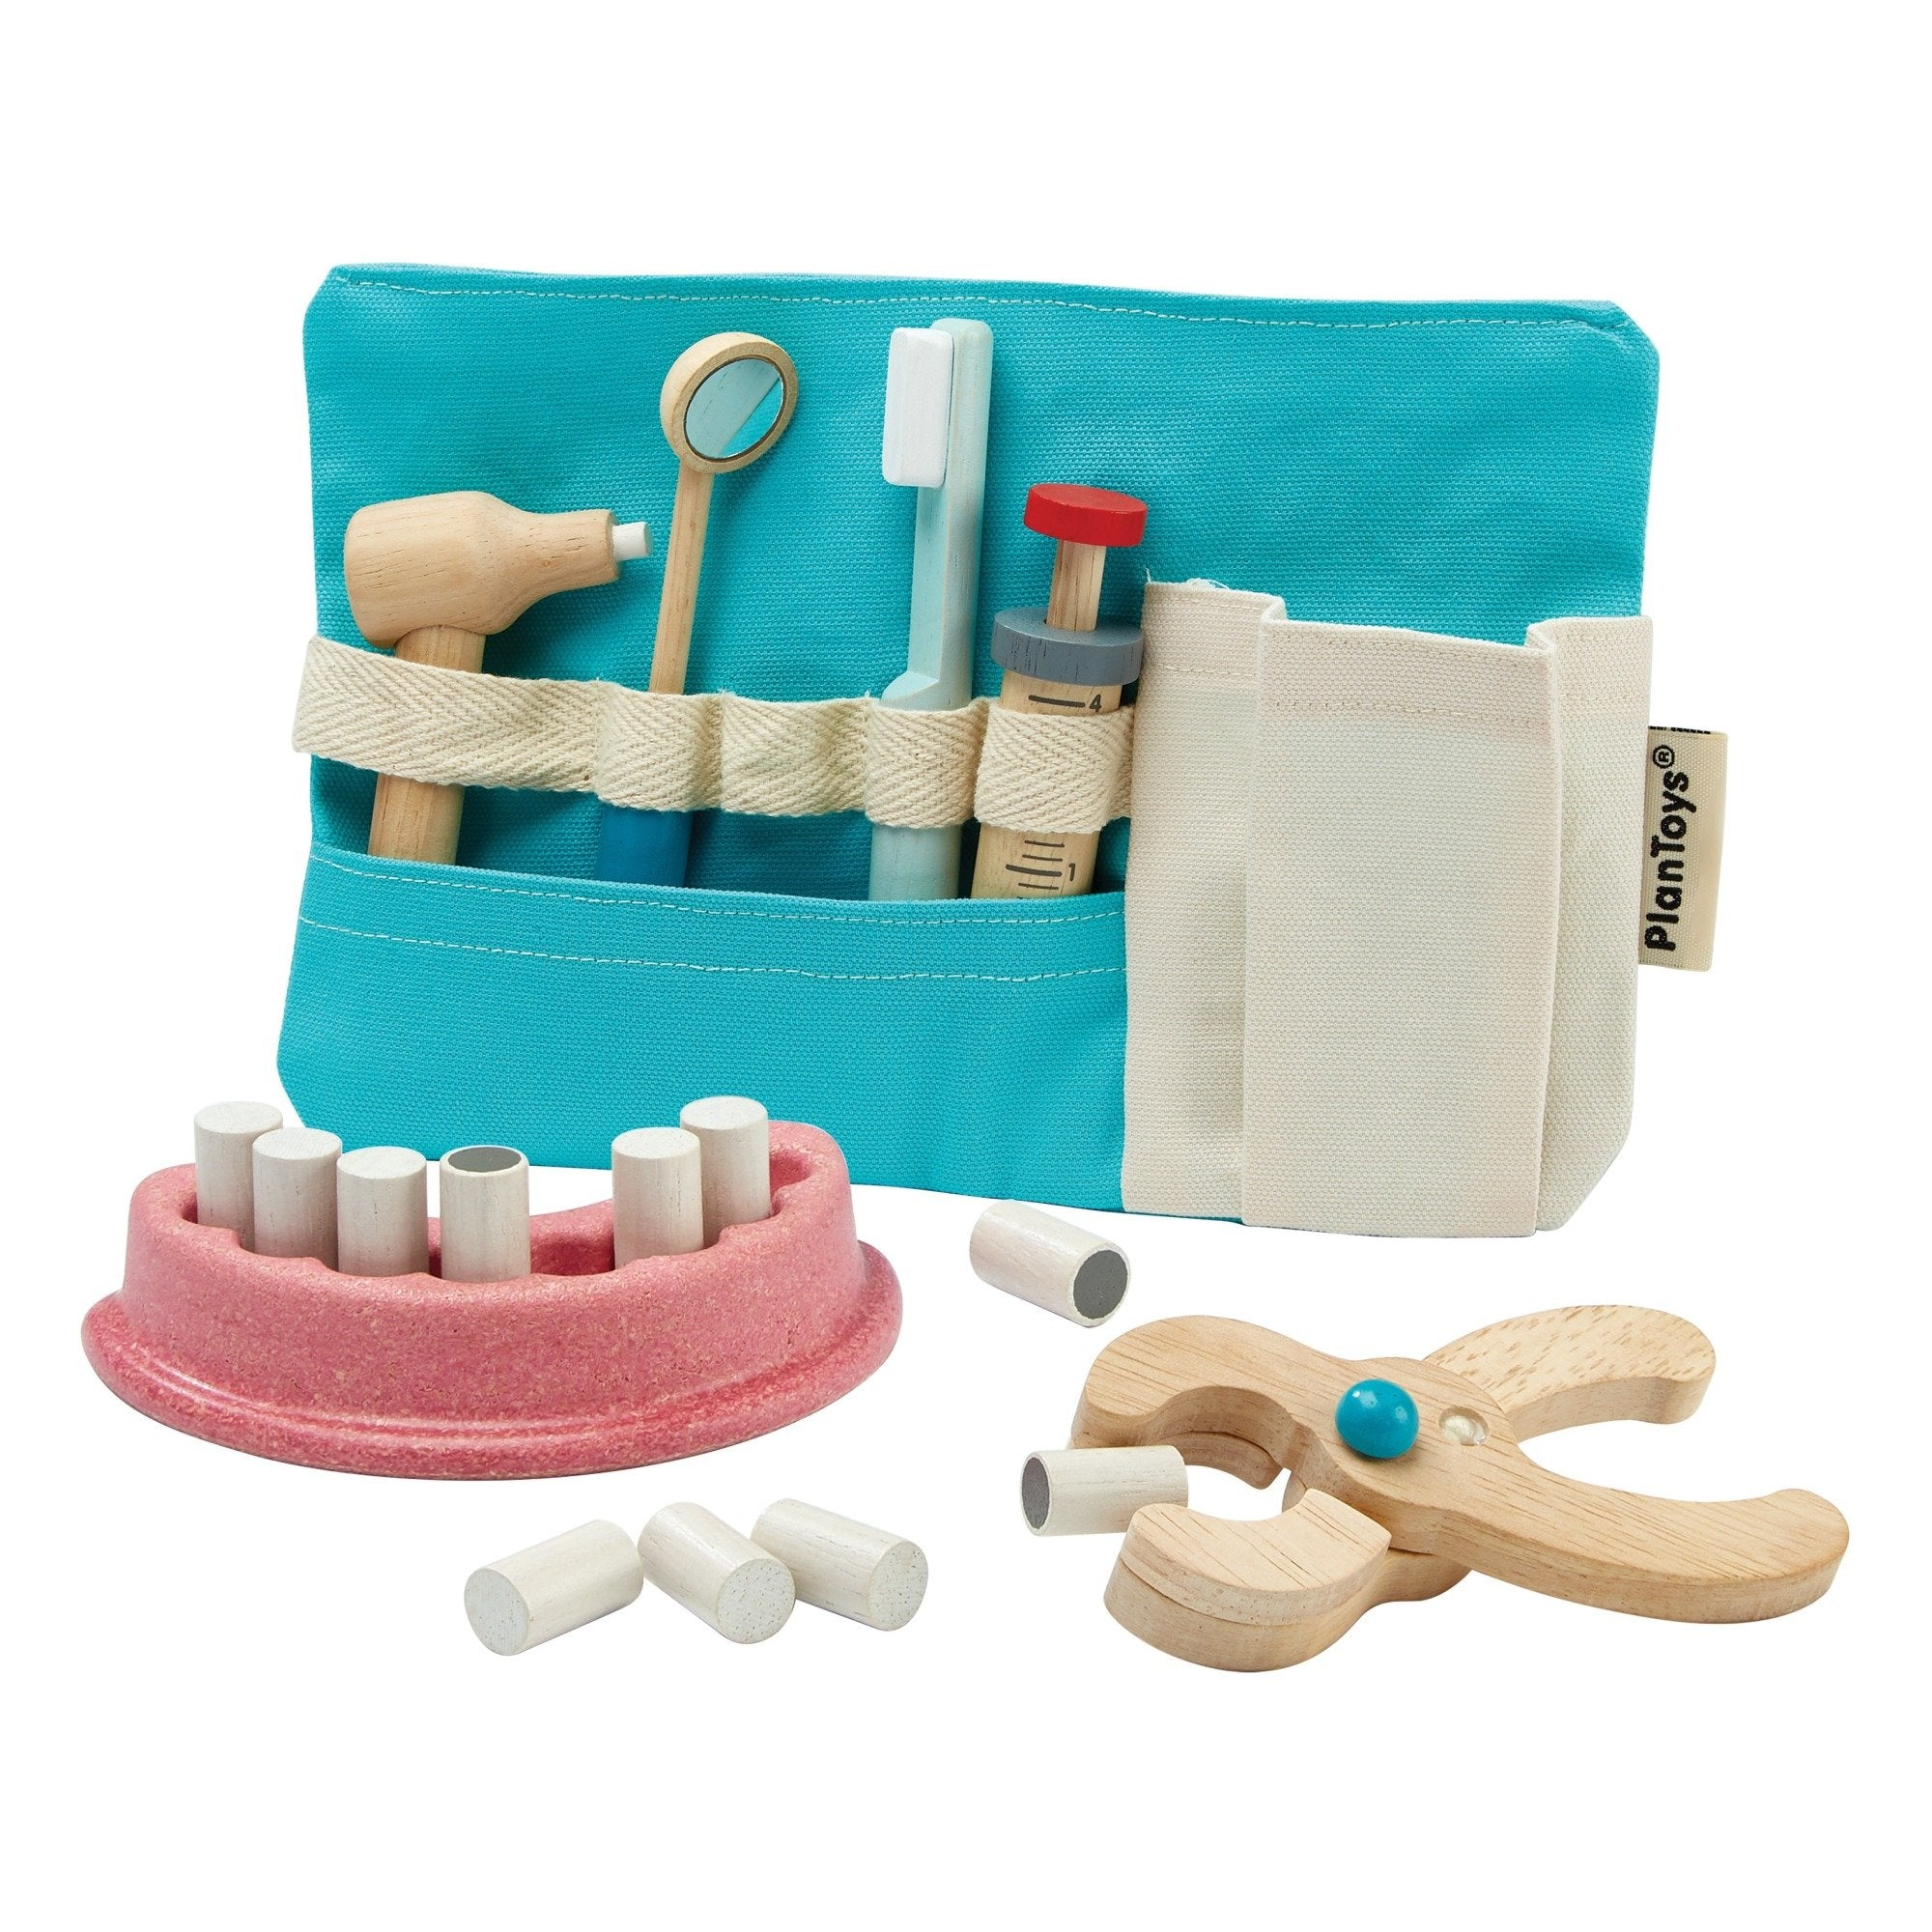 Plan Toys Wooden Dentist Set PlanToys Pretend Play at Little Earth Nest Eco Shop